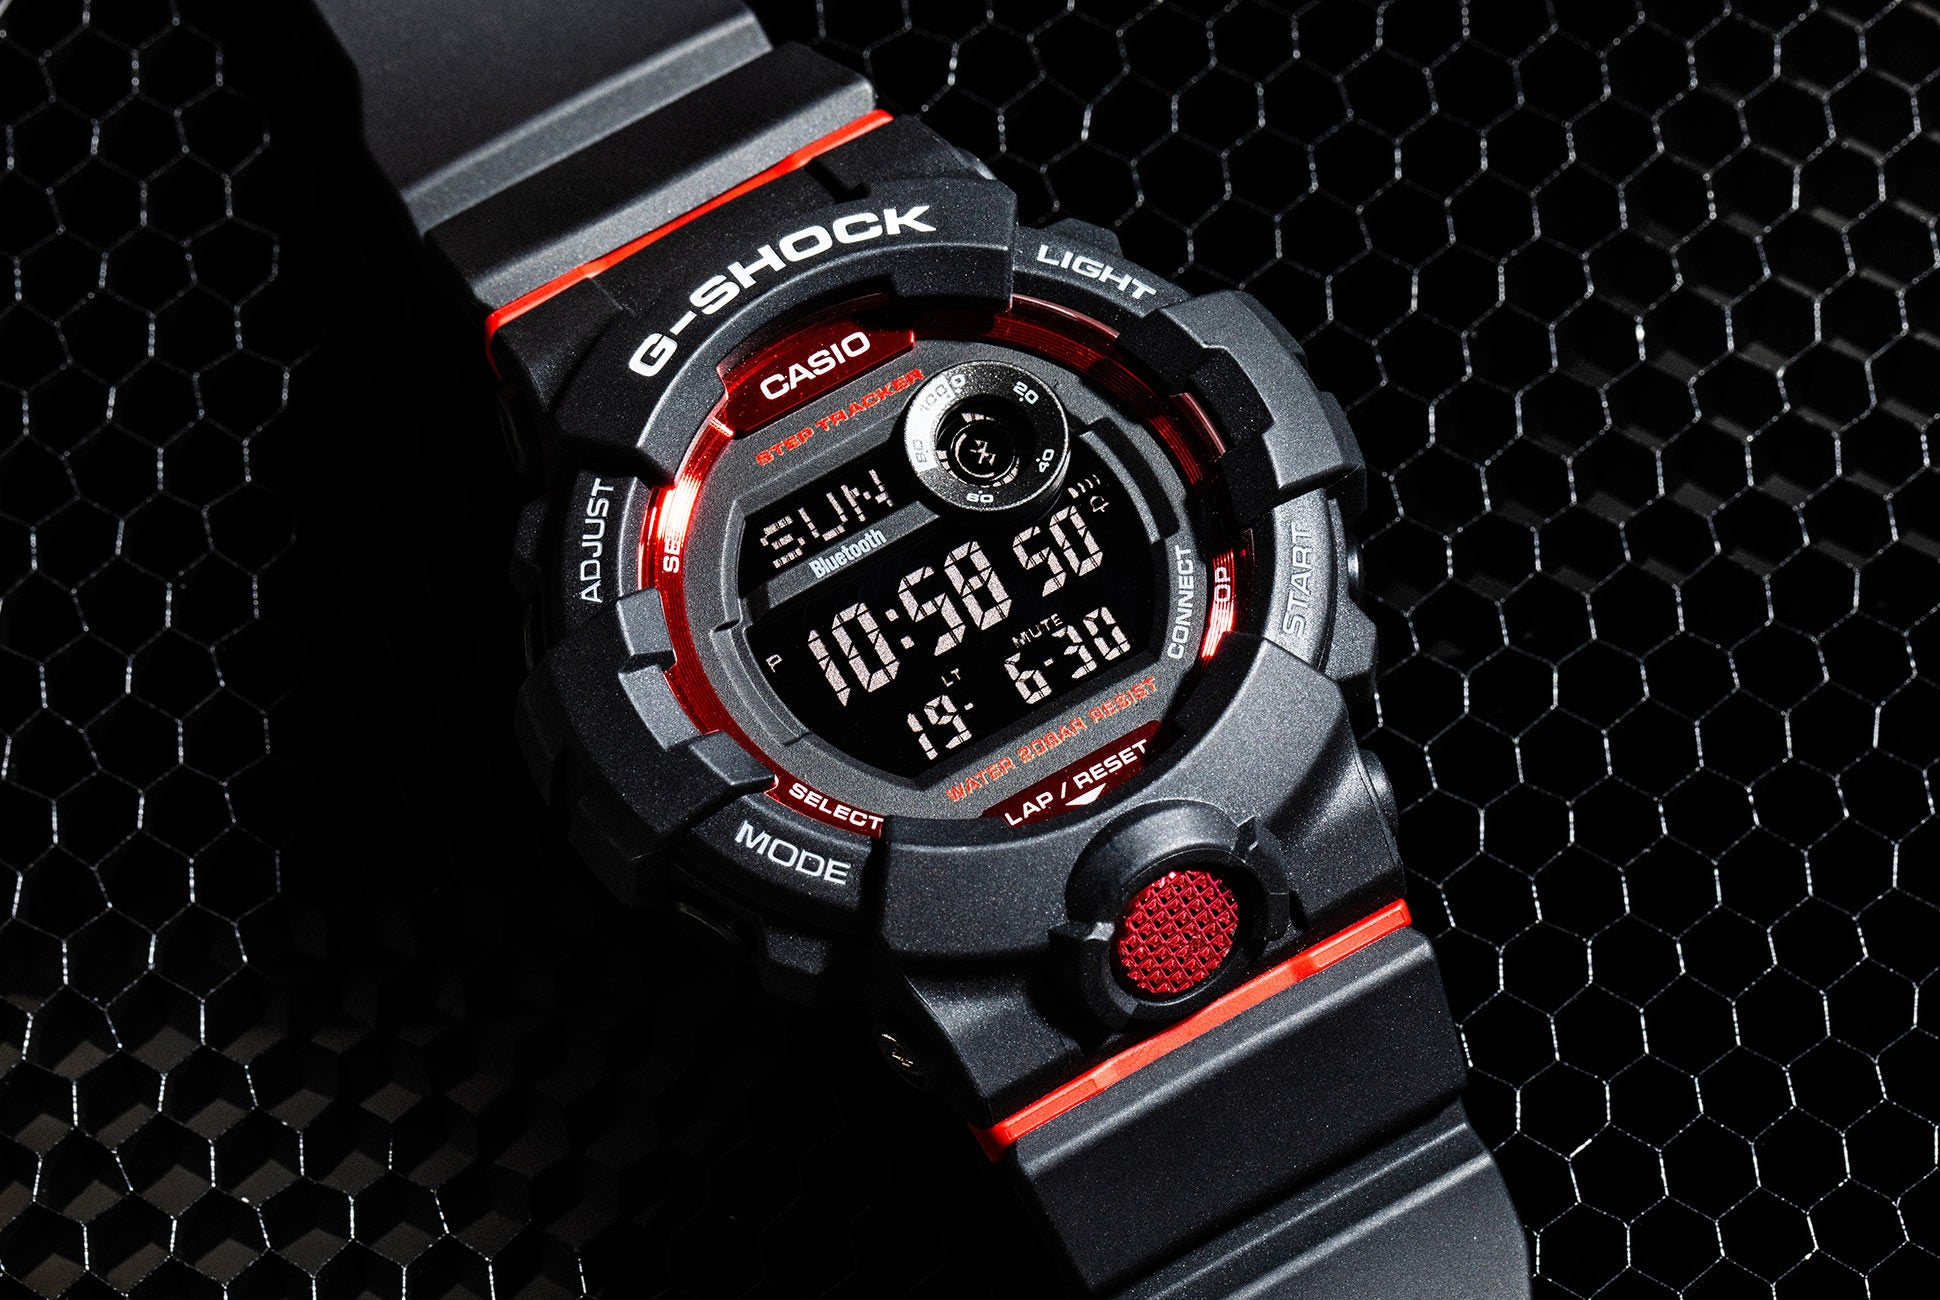 bb6ef751fe5 Casio G-Shock G-Squad Bluetooth Red Black Watch GBD800-1 – Nagi Jewelers